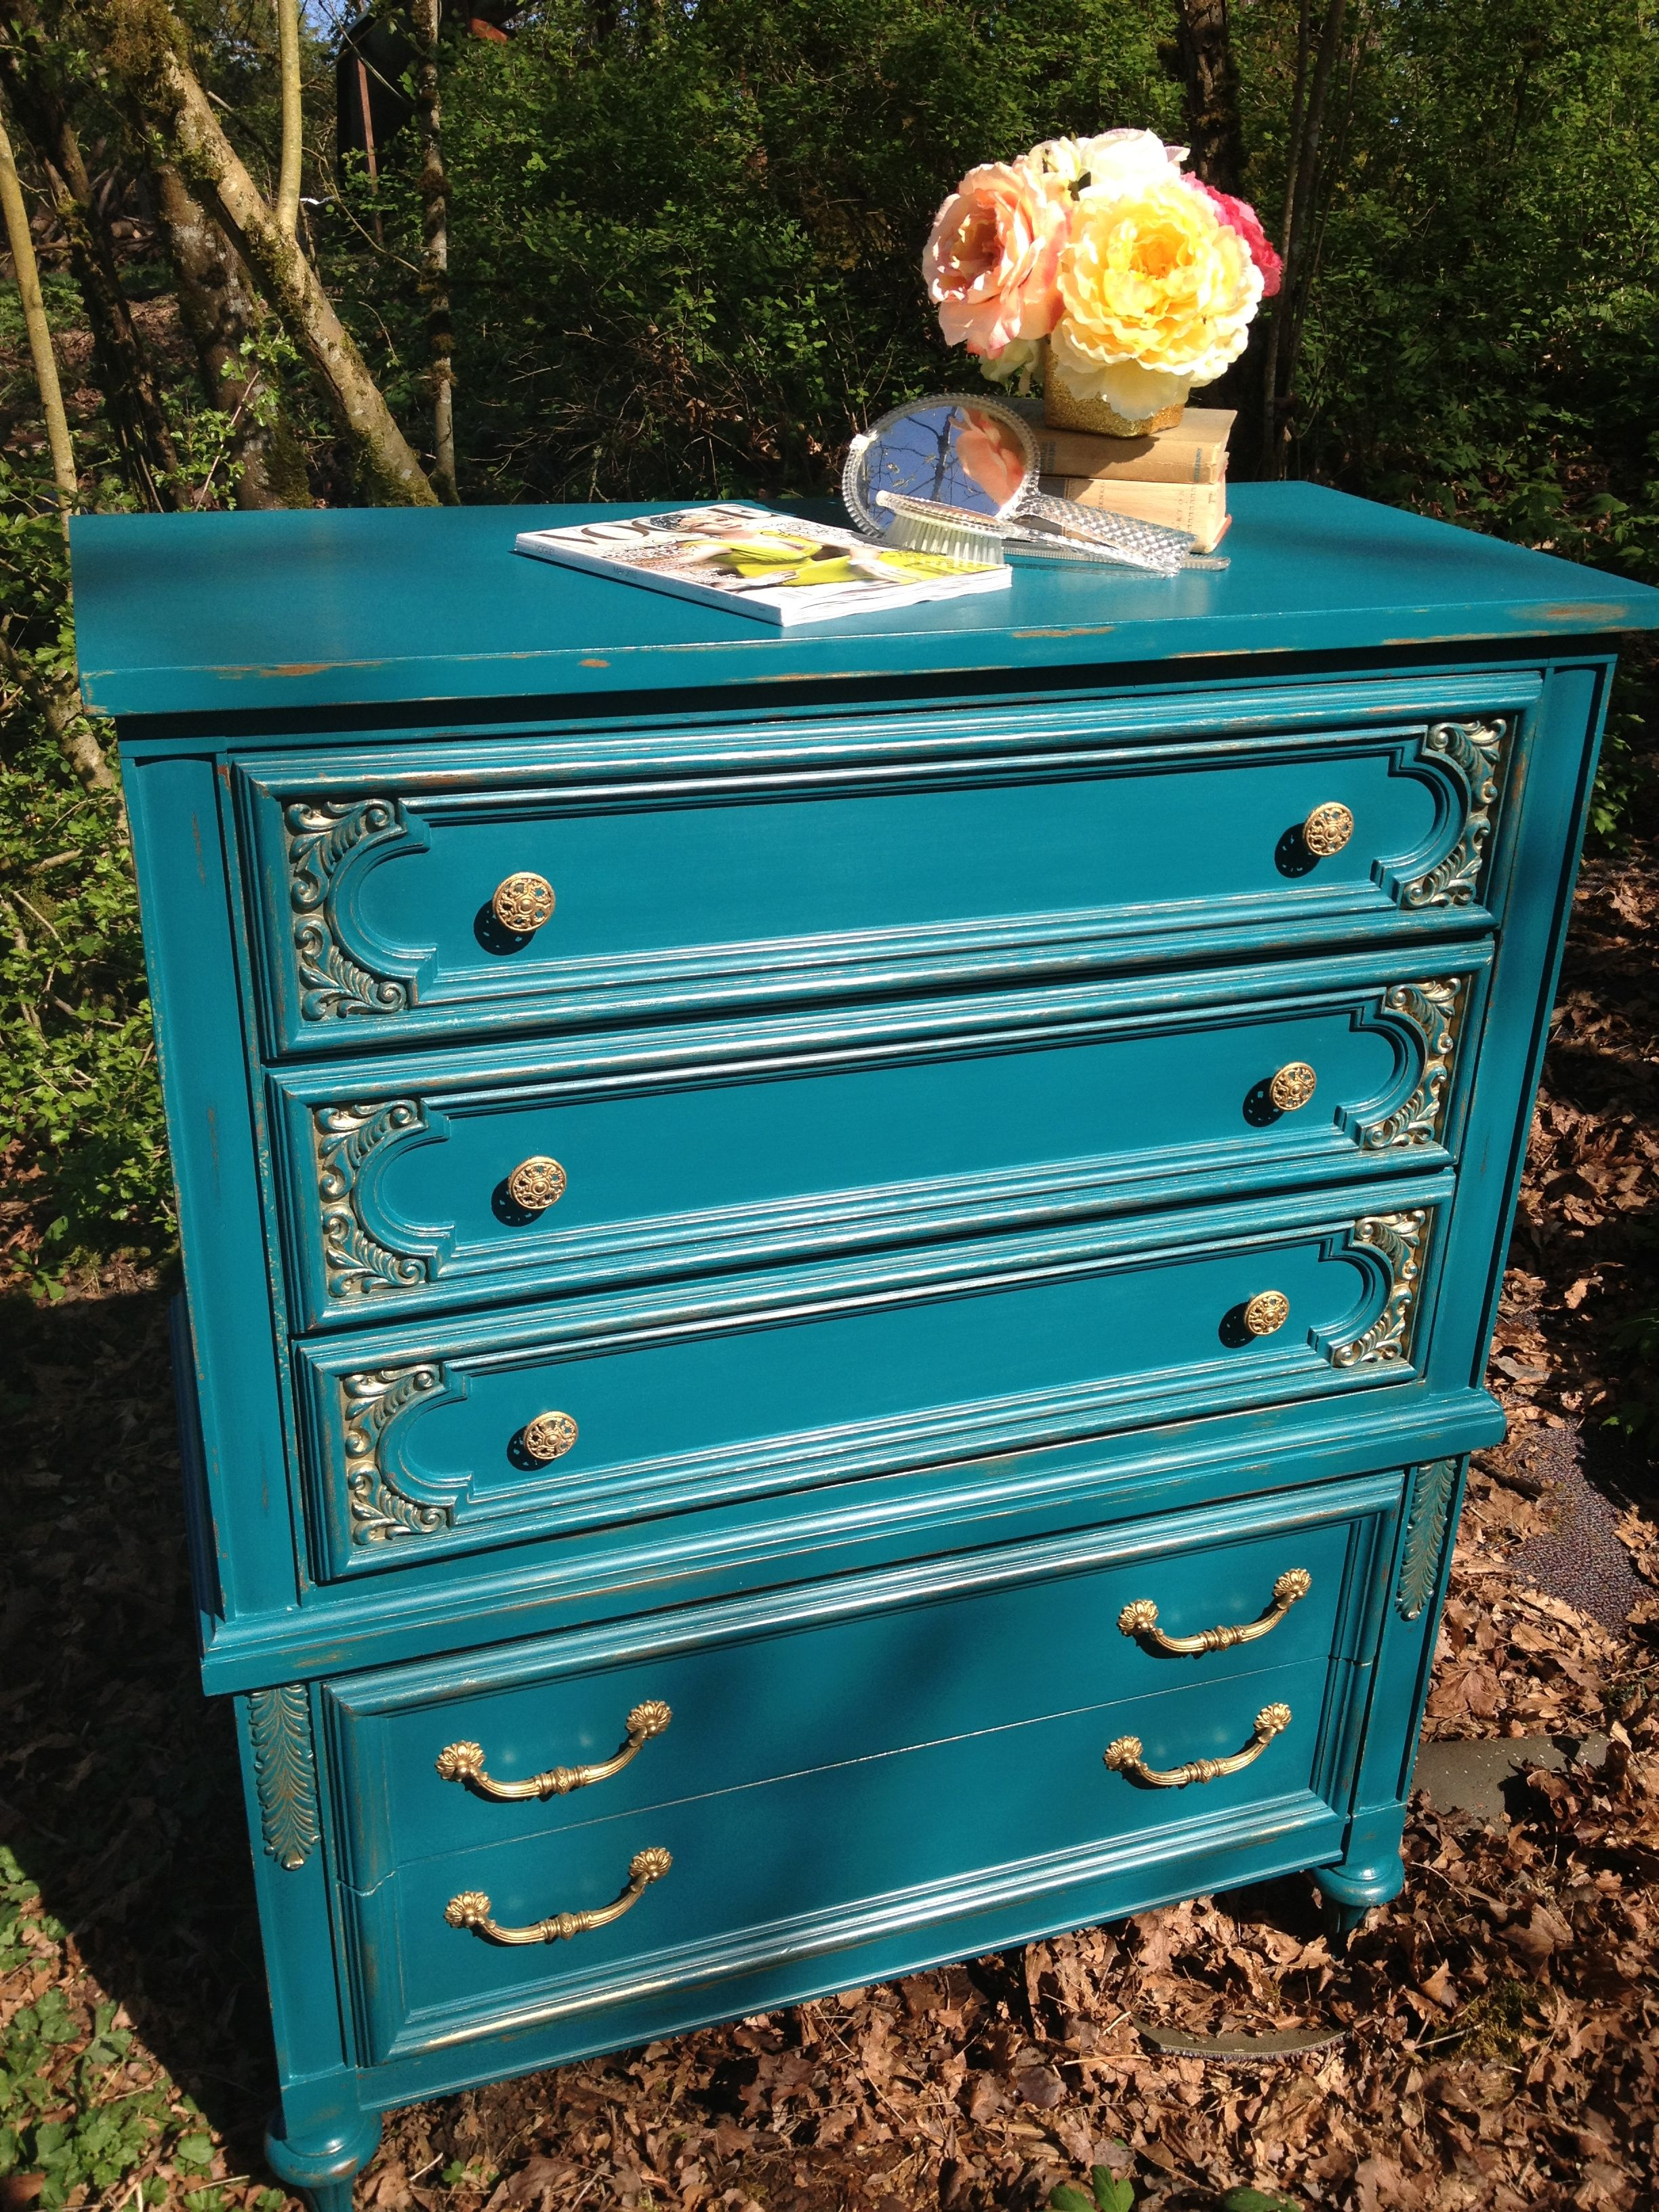 Peacock Blue with Gold accents. Vintage Broyhill Dresser